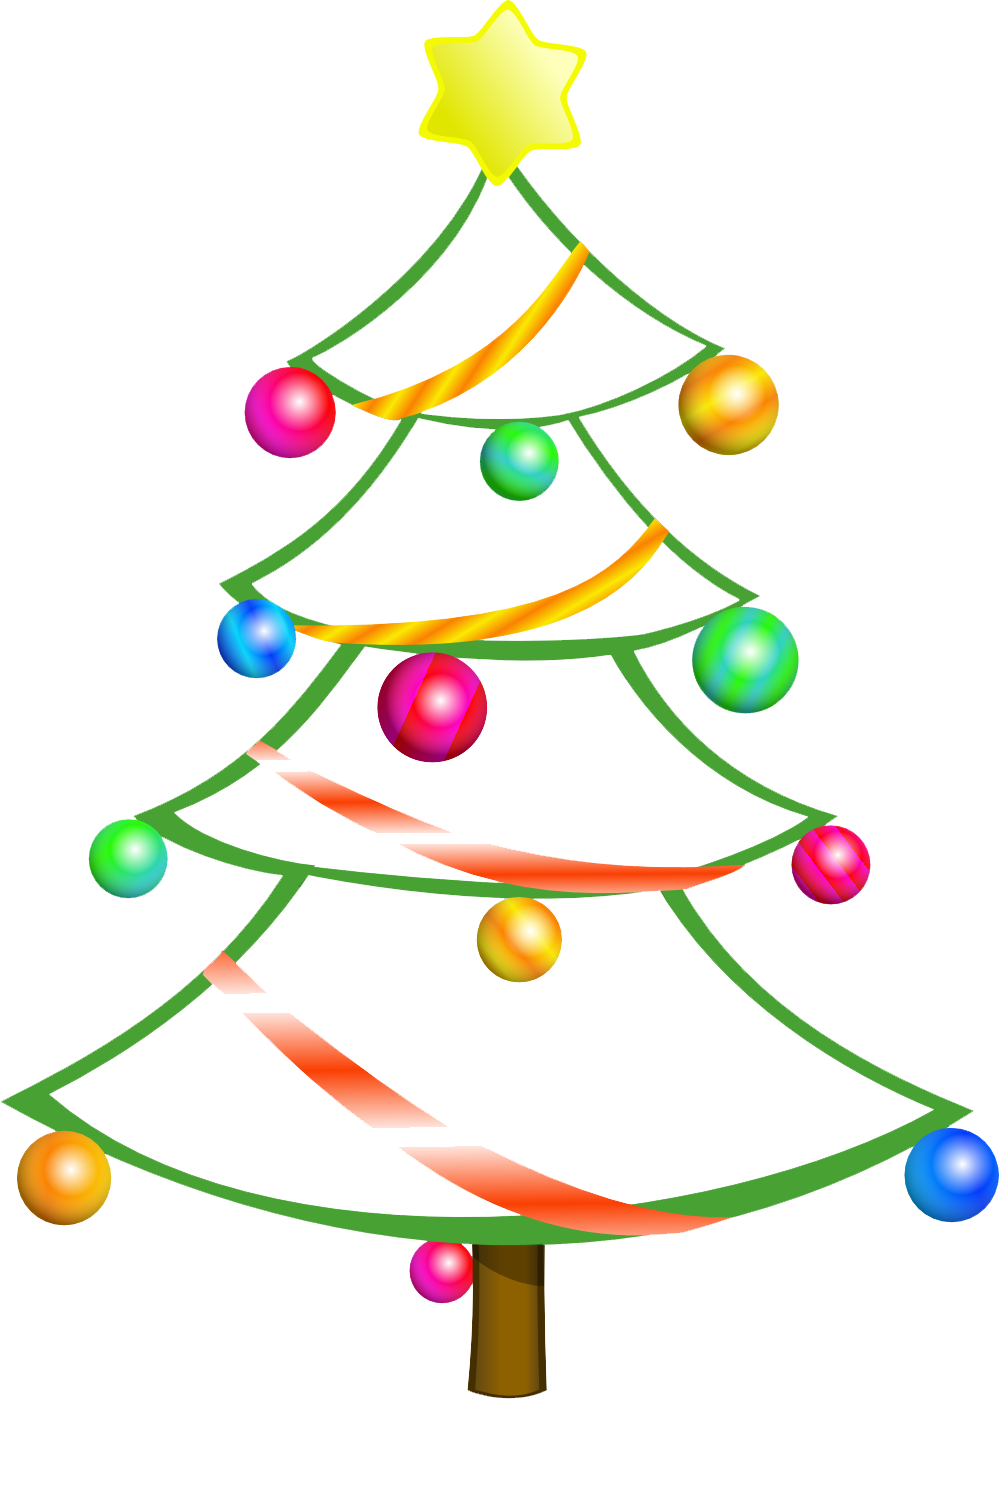 68 images of Free Christmas Tree Clip Art . You can use these free ...